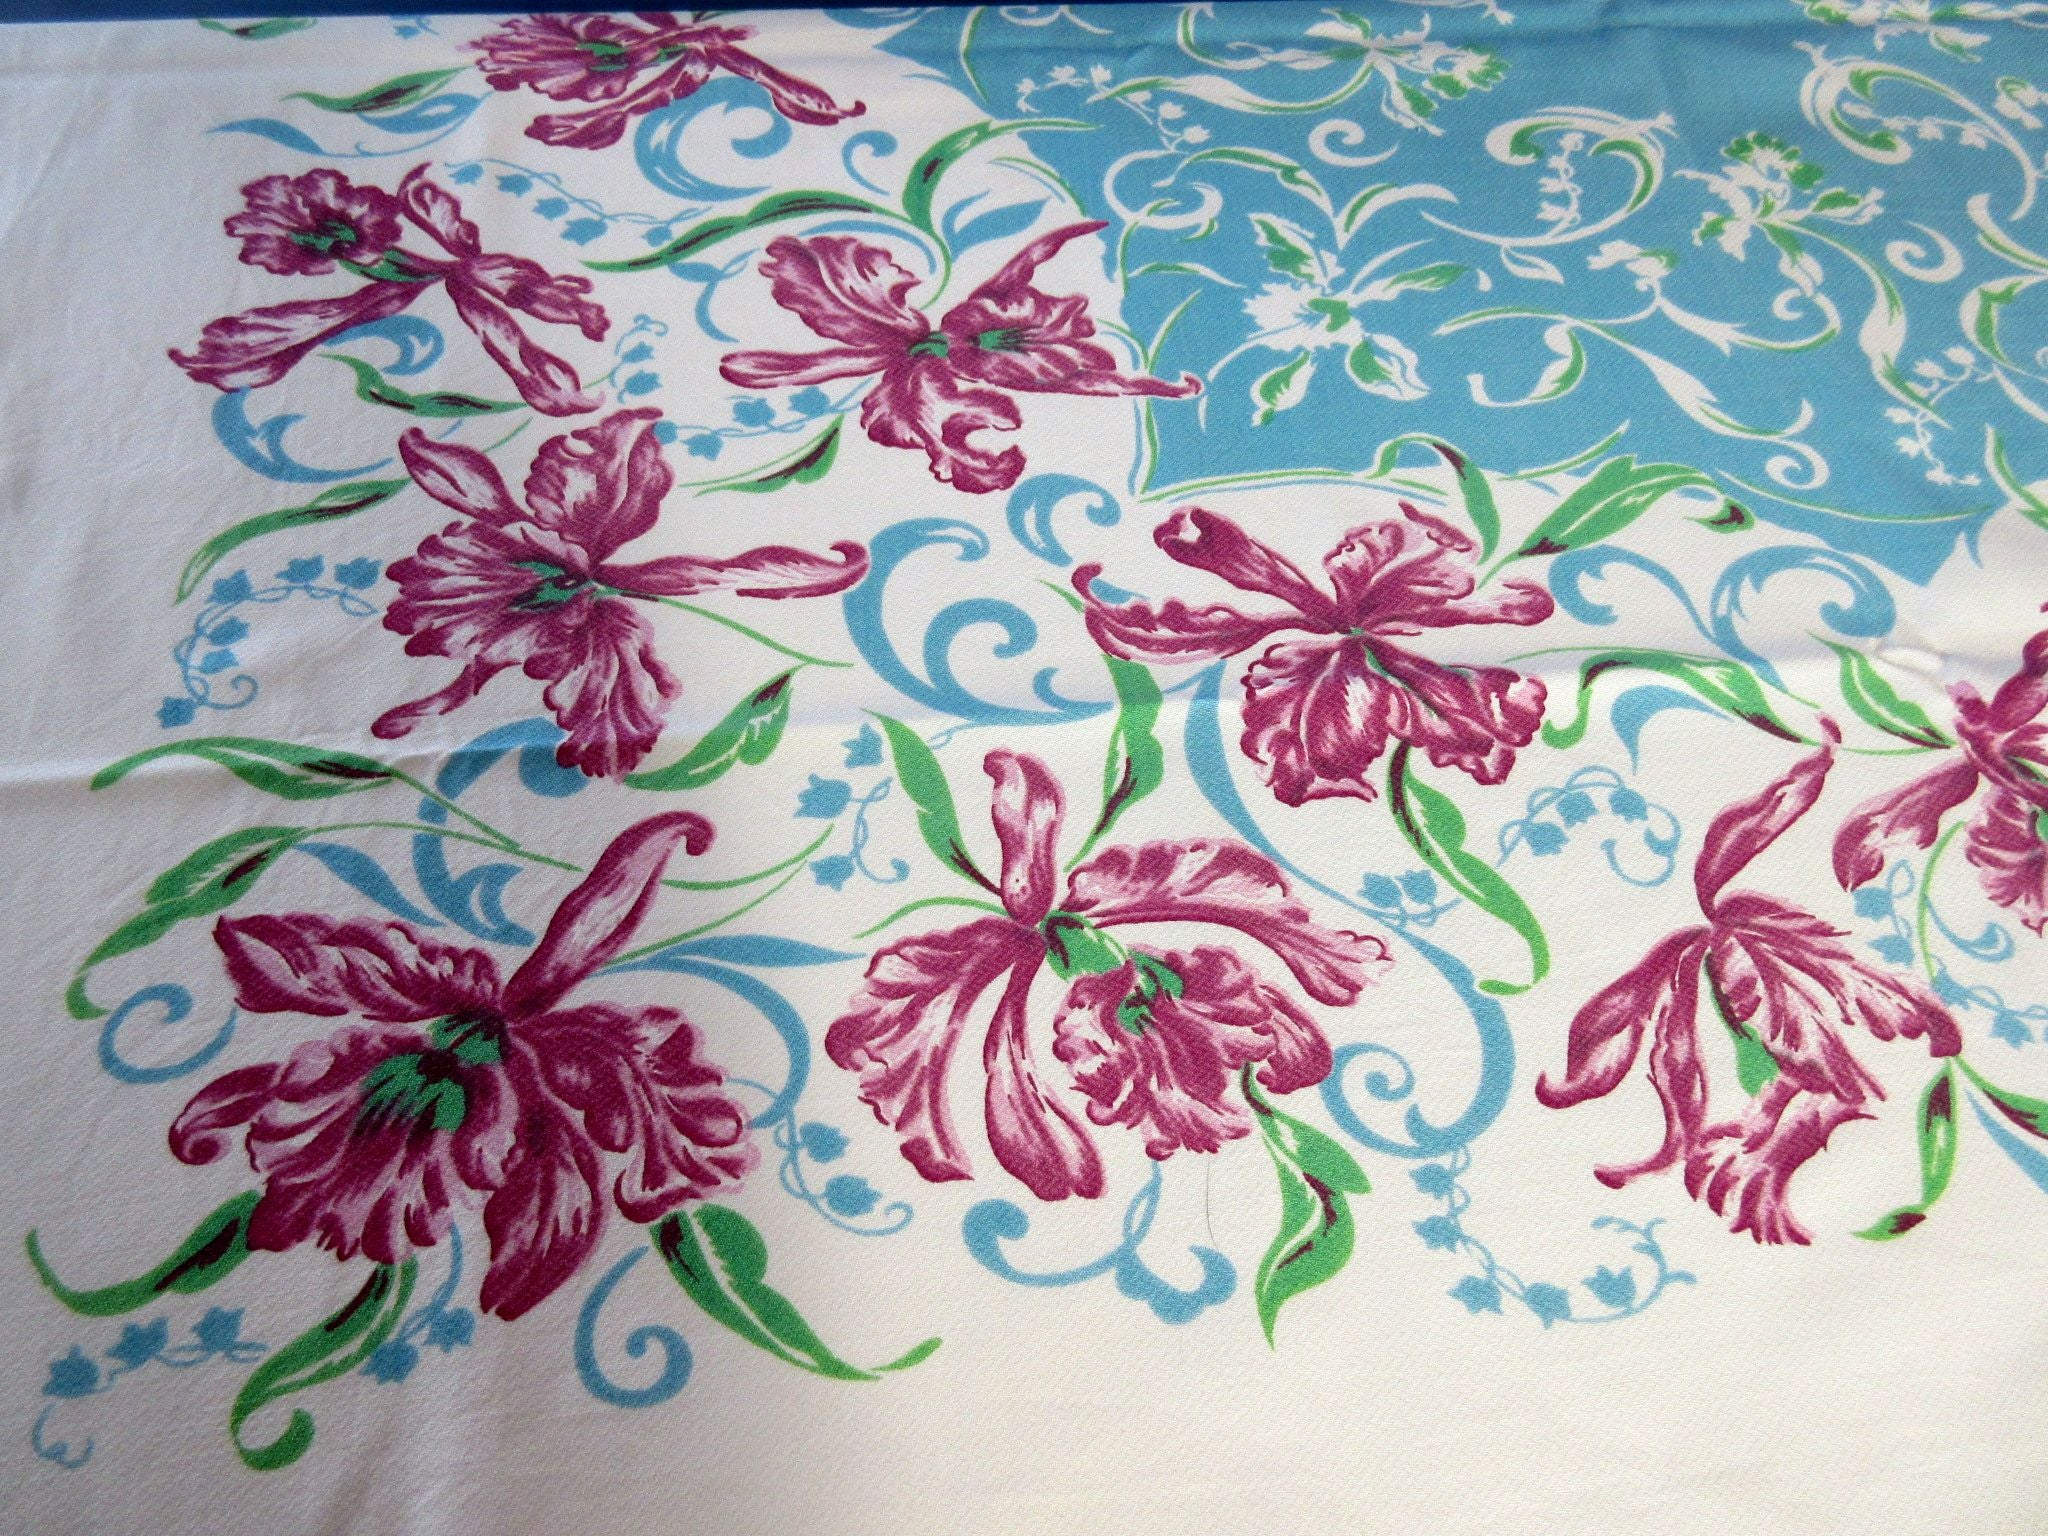 Pink Orchids on Turquoise Floral Vintage Printed Tablecloth (52 X 46)